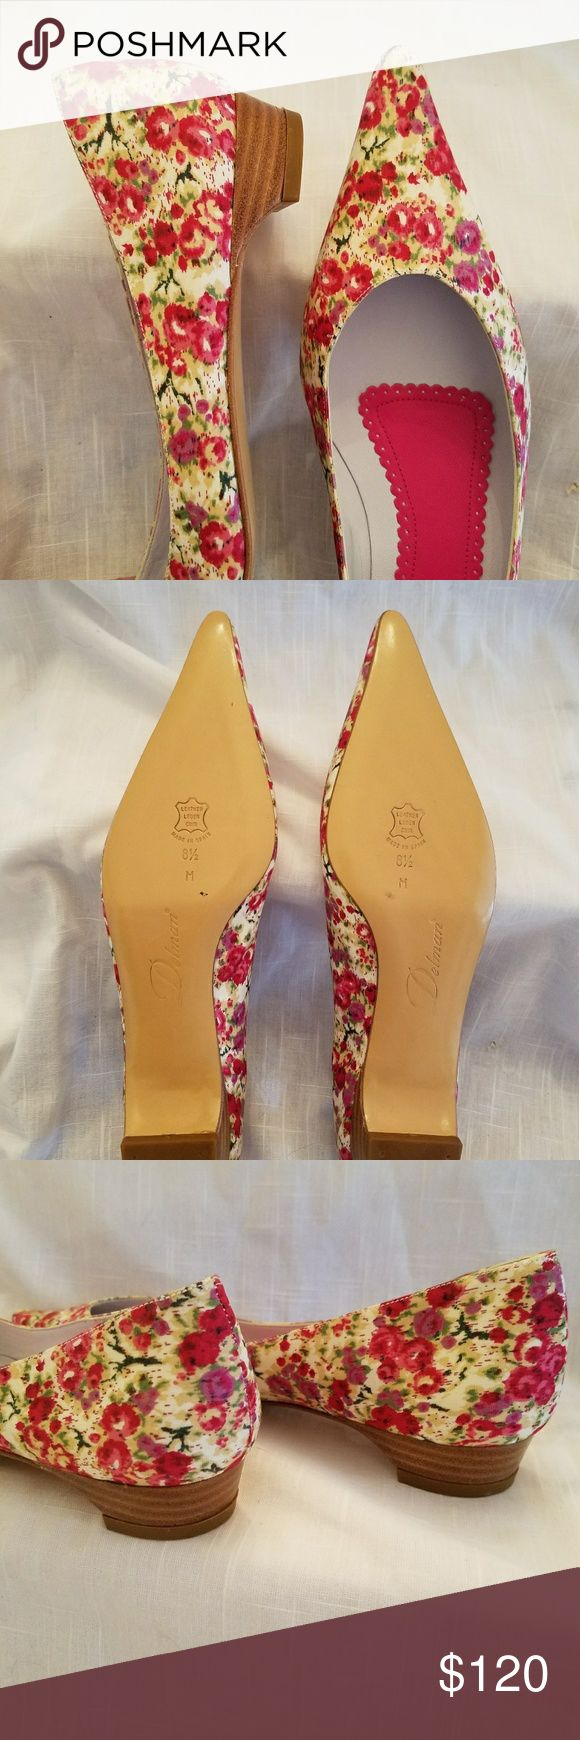 "Delman ""Buffy"" Cerise Floral flat Never worn! Stunning fabric and chic pointed toes. Wear with a summer dress or jeans and a t-shirt! The lining is butter-soft leather against your feet. Off-white base with pinks and greens. Made in Spain. Original box included. Delman Shoes Flats & Loafers"